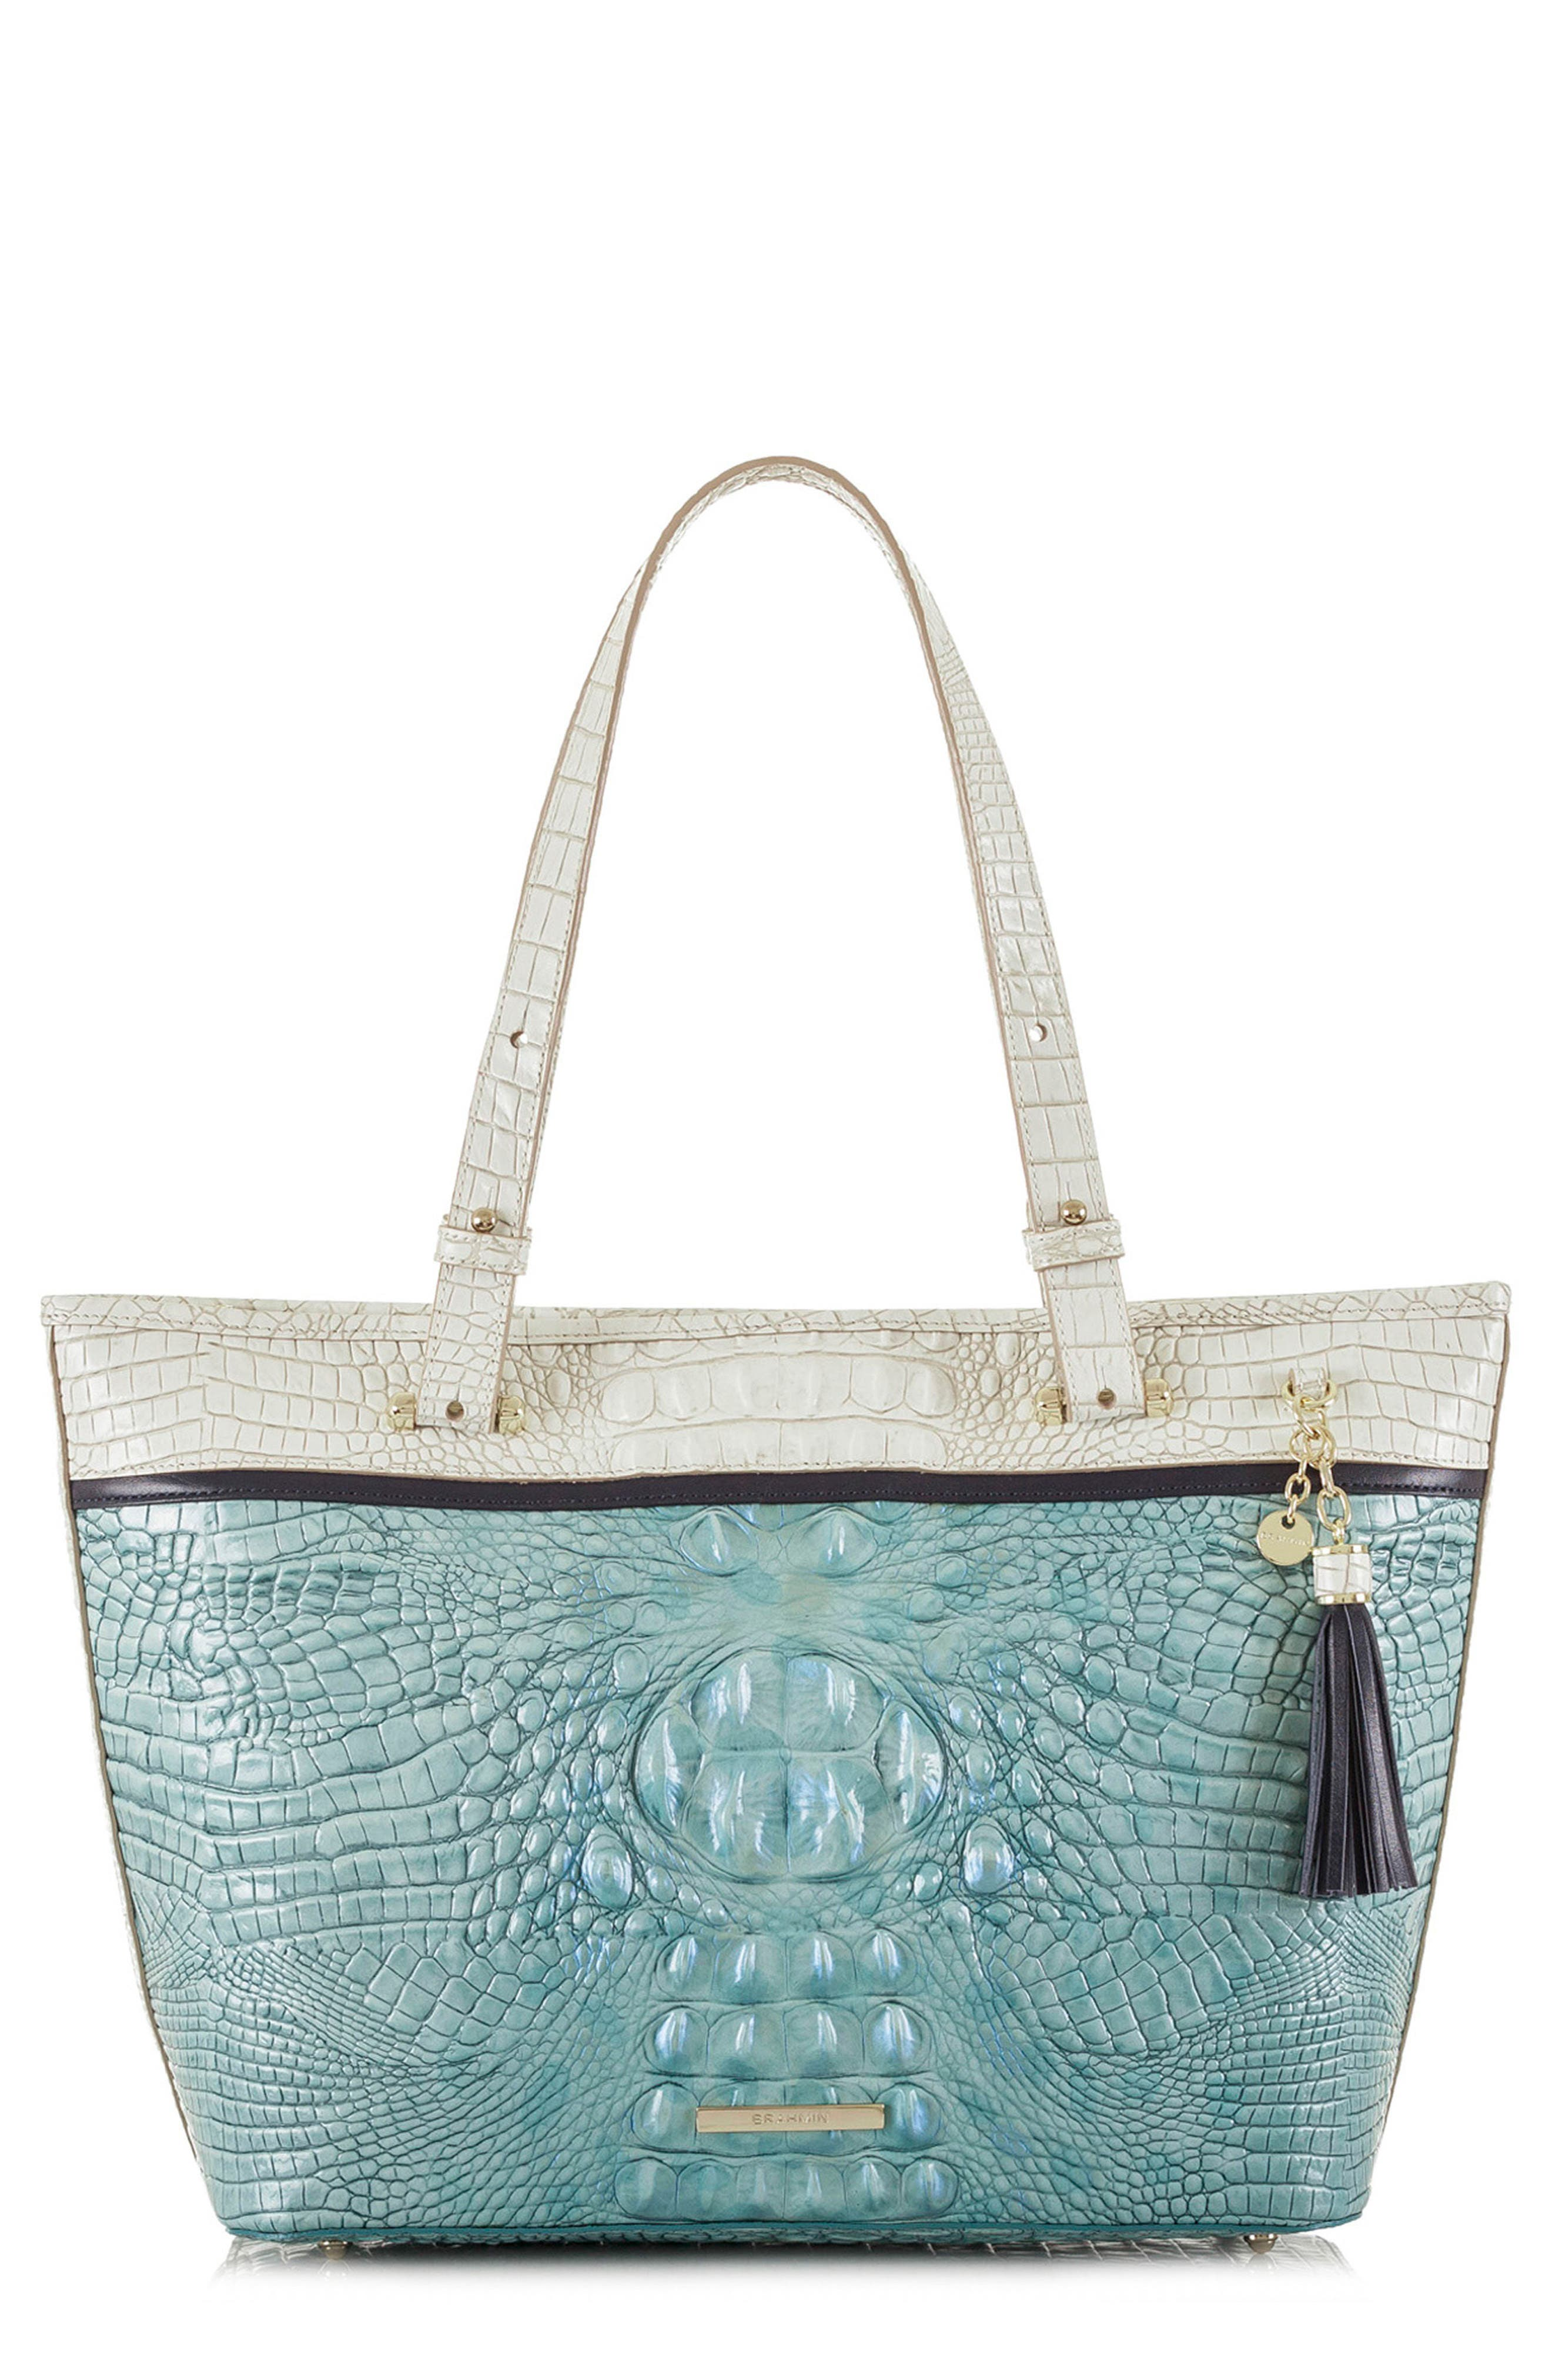 Medium Asher Embossed Leather Tote,                         Main,                         color, Astral